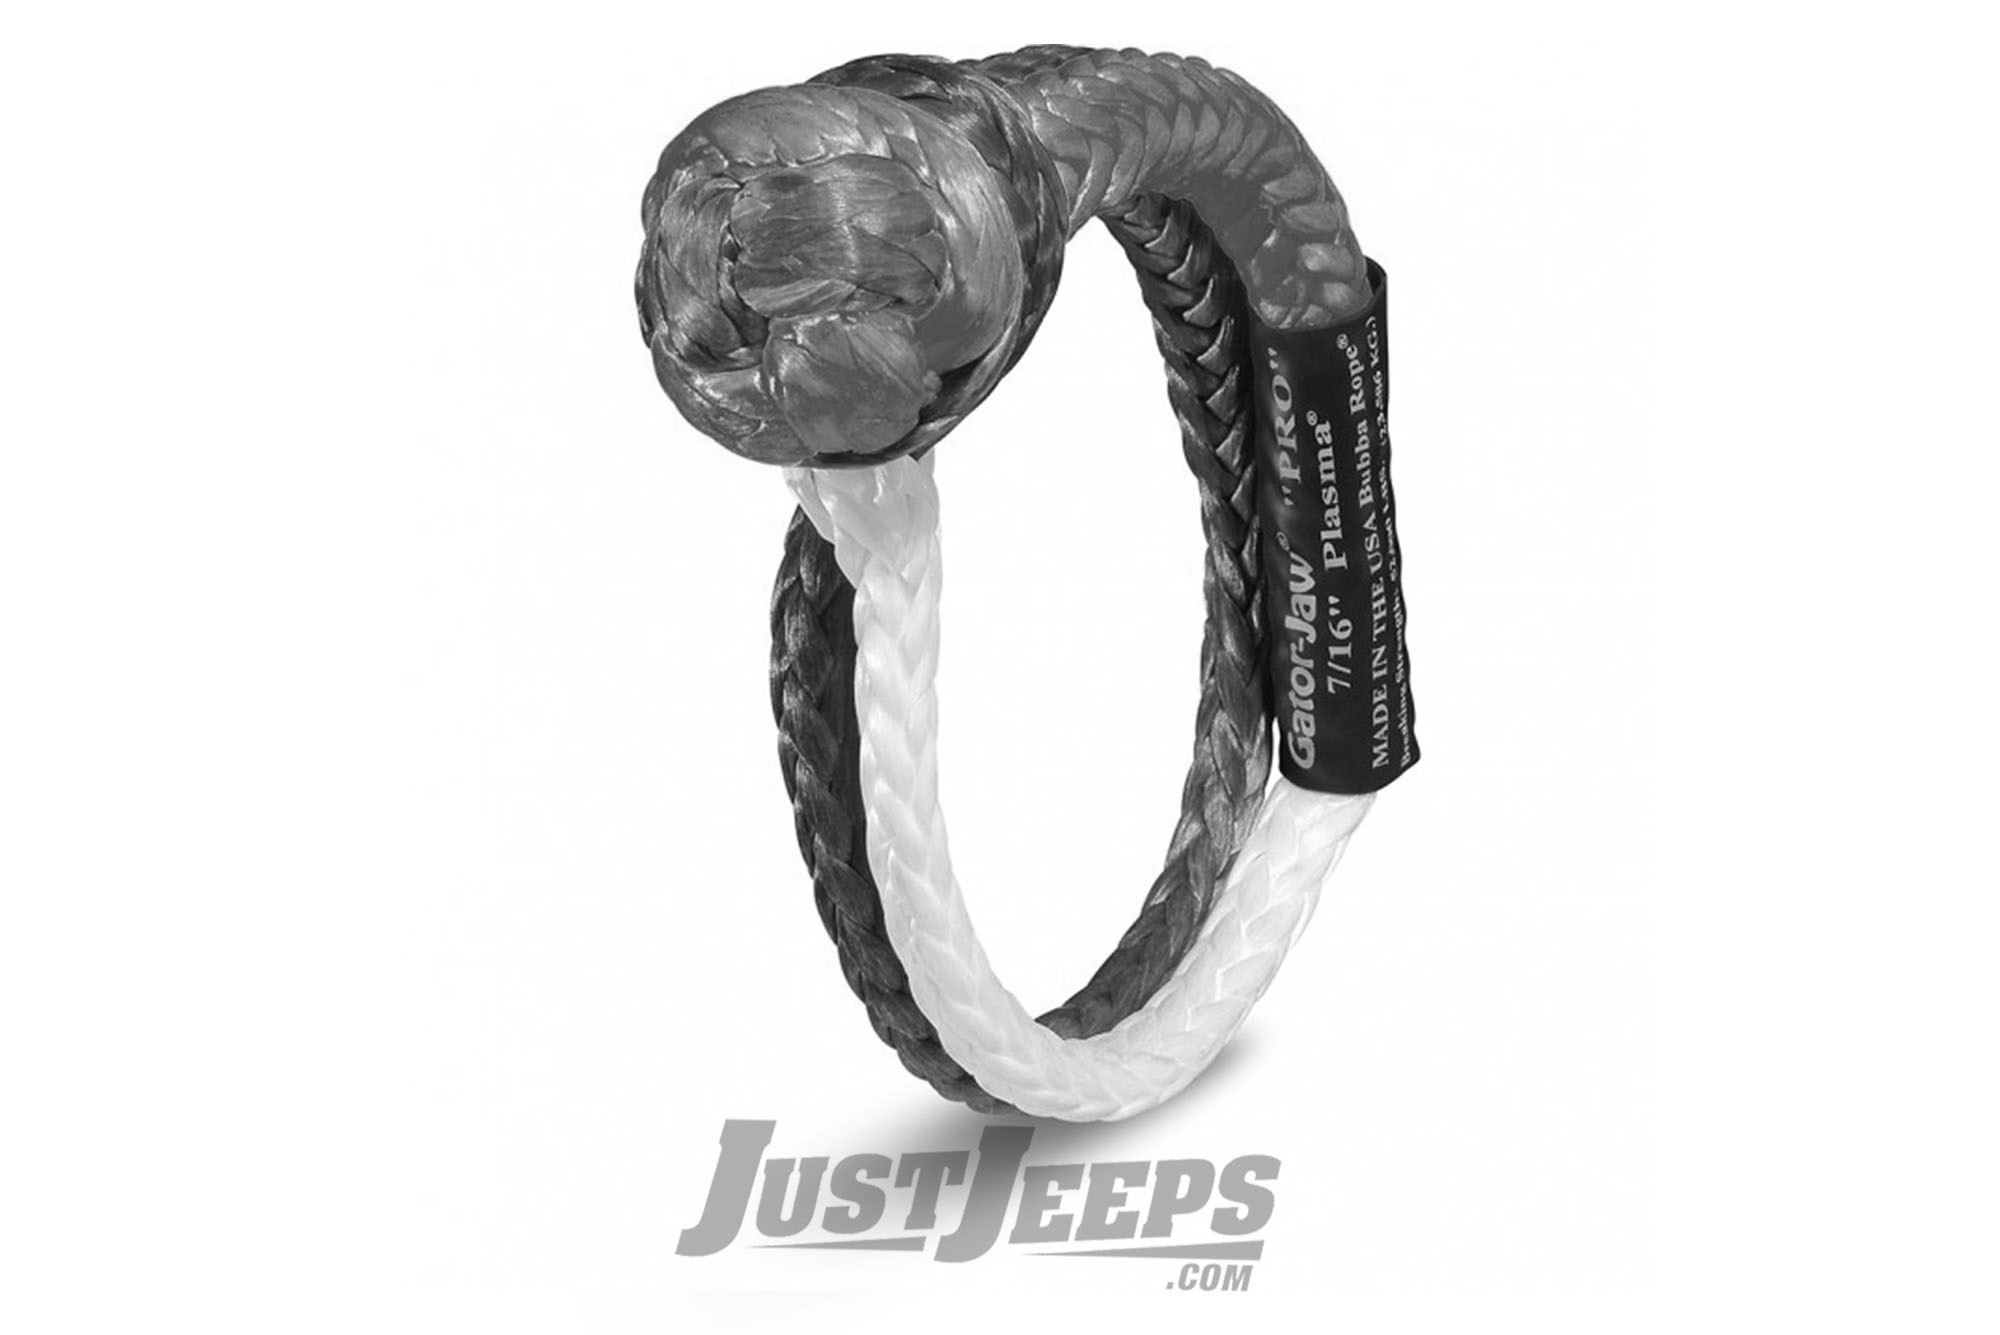 "Bubba Rope Standard Gator Jaw 7/16"" Soft Shackle With A 32,000 lbs. Breaking Strength"